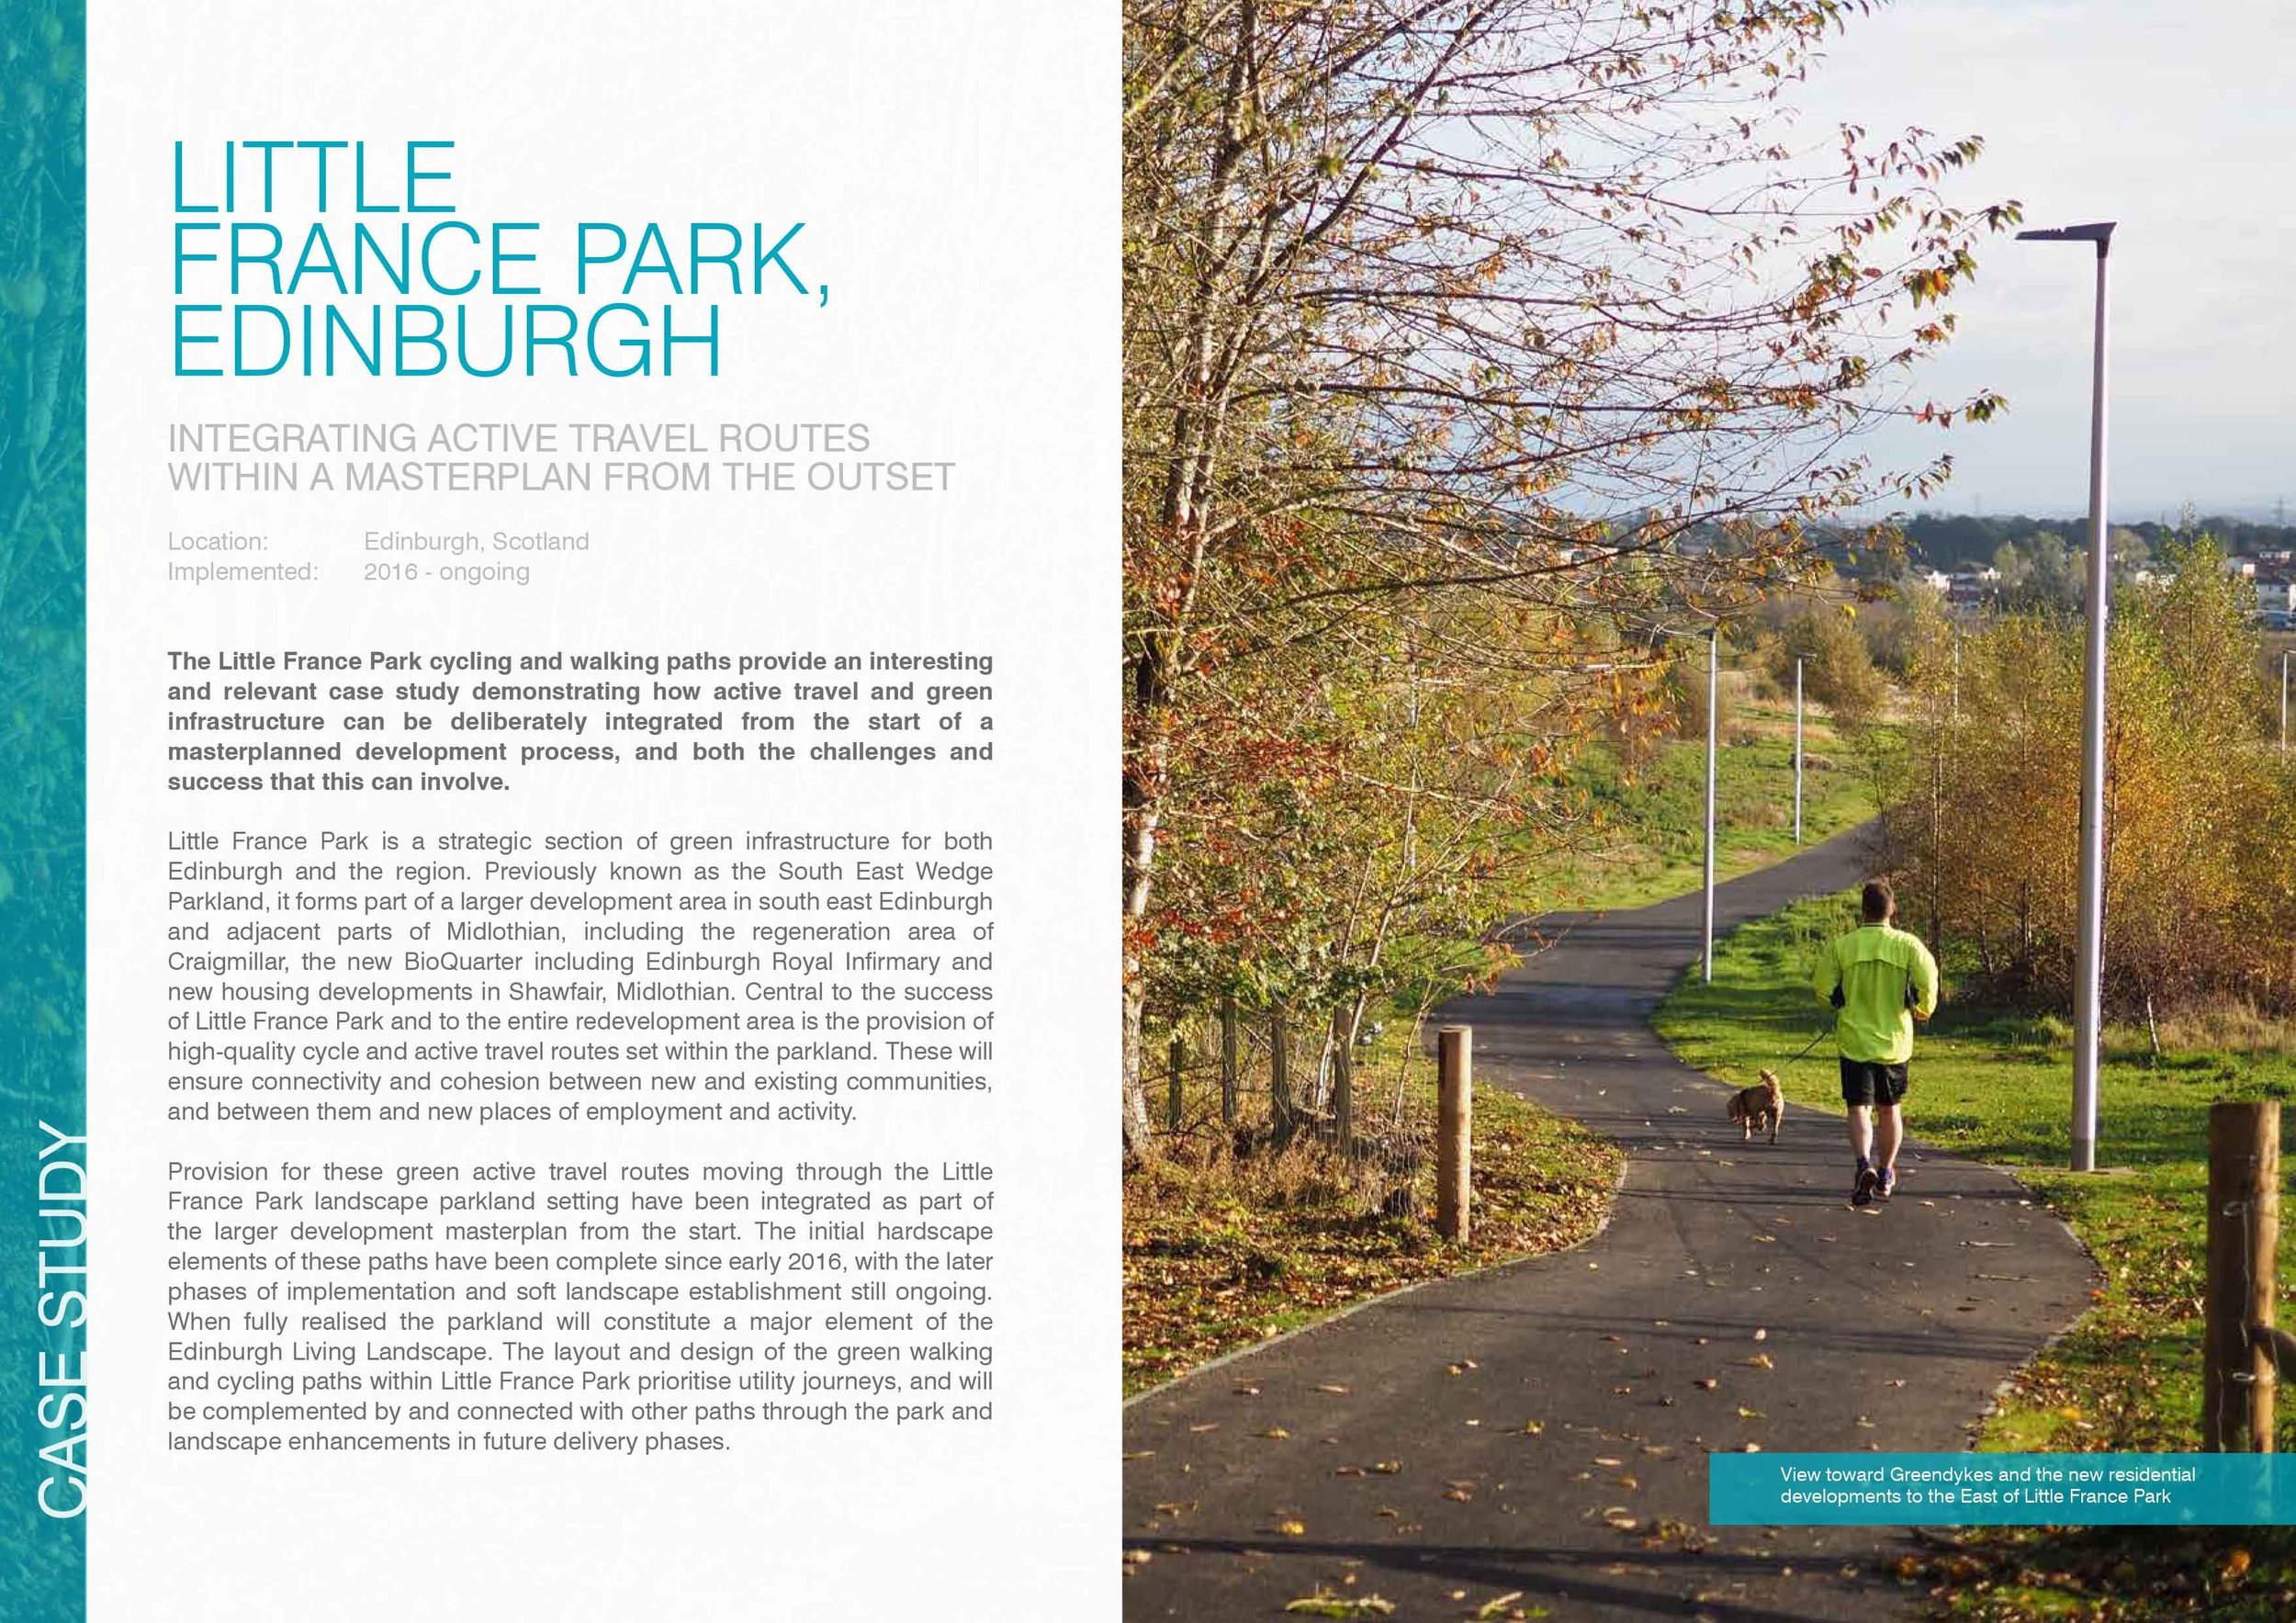 Little France Park, Edinburgh:  an initiative integrating active travel routes within a larger masterplan.